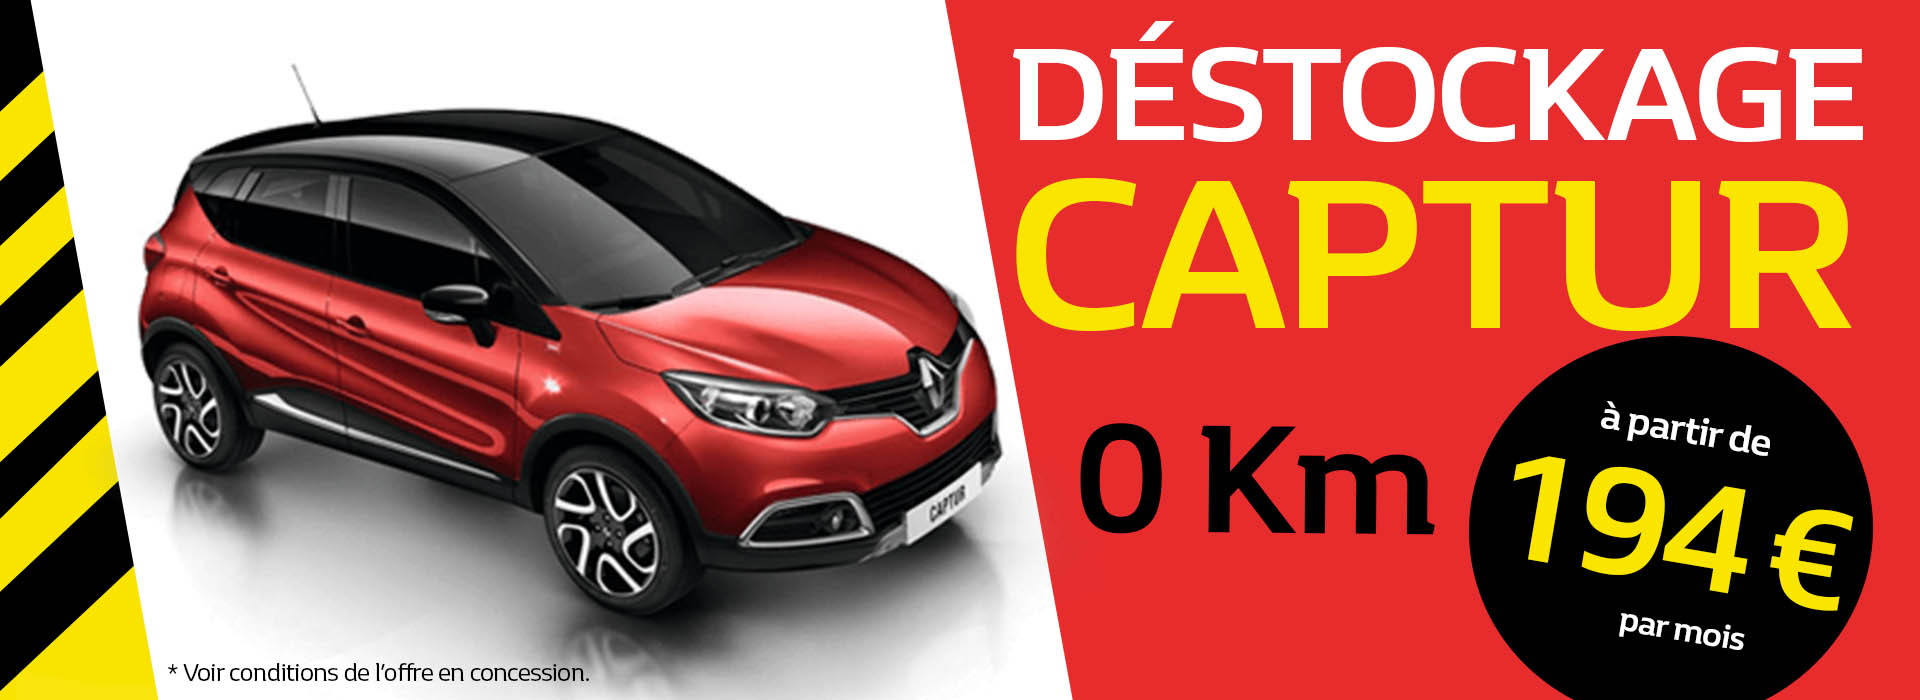 Destockage Renault Captur